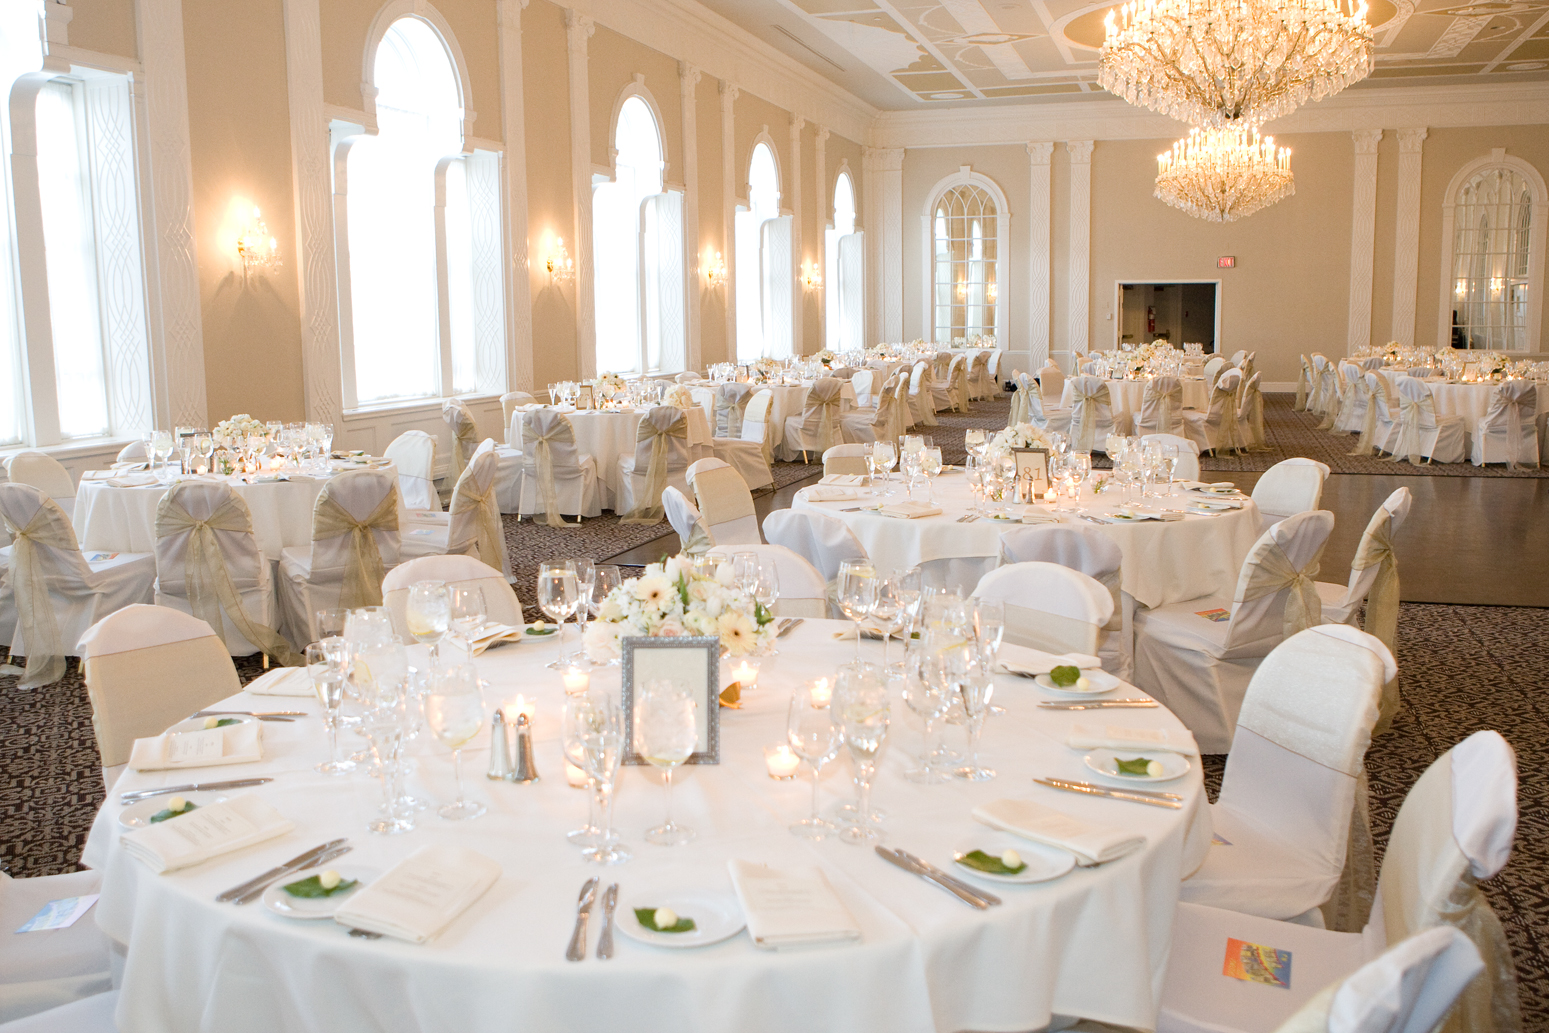 Photo Courtesy Of Tony Yang Photography Jennifer And Matt Light Up The Ballroom With White On Silver Accents